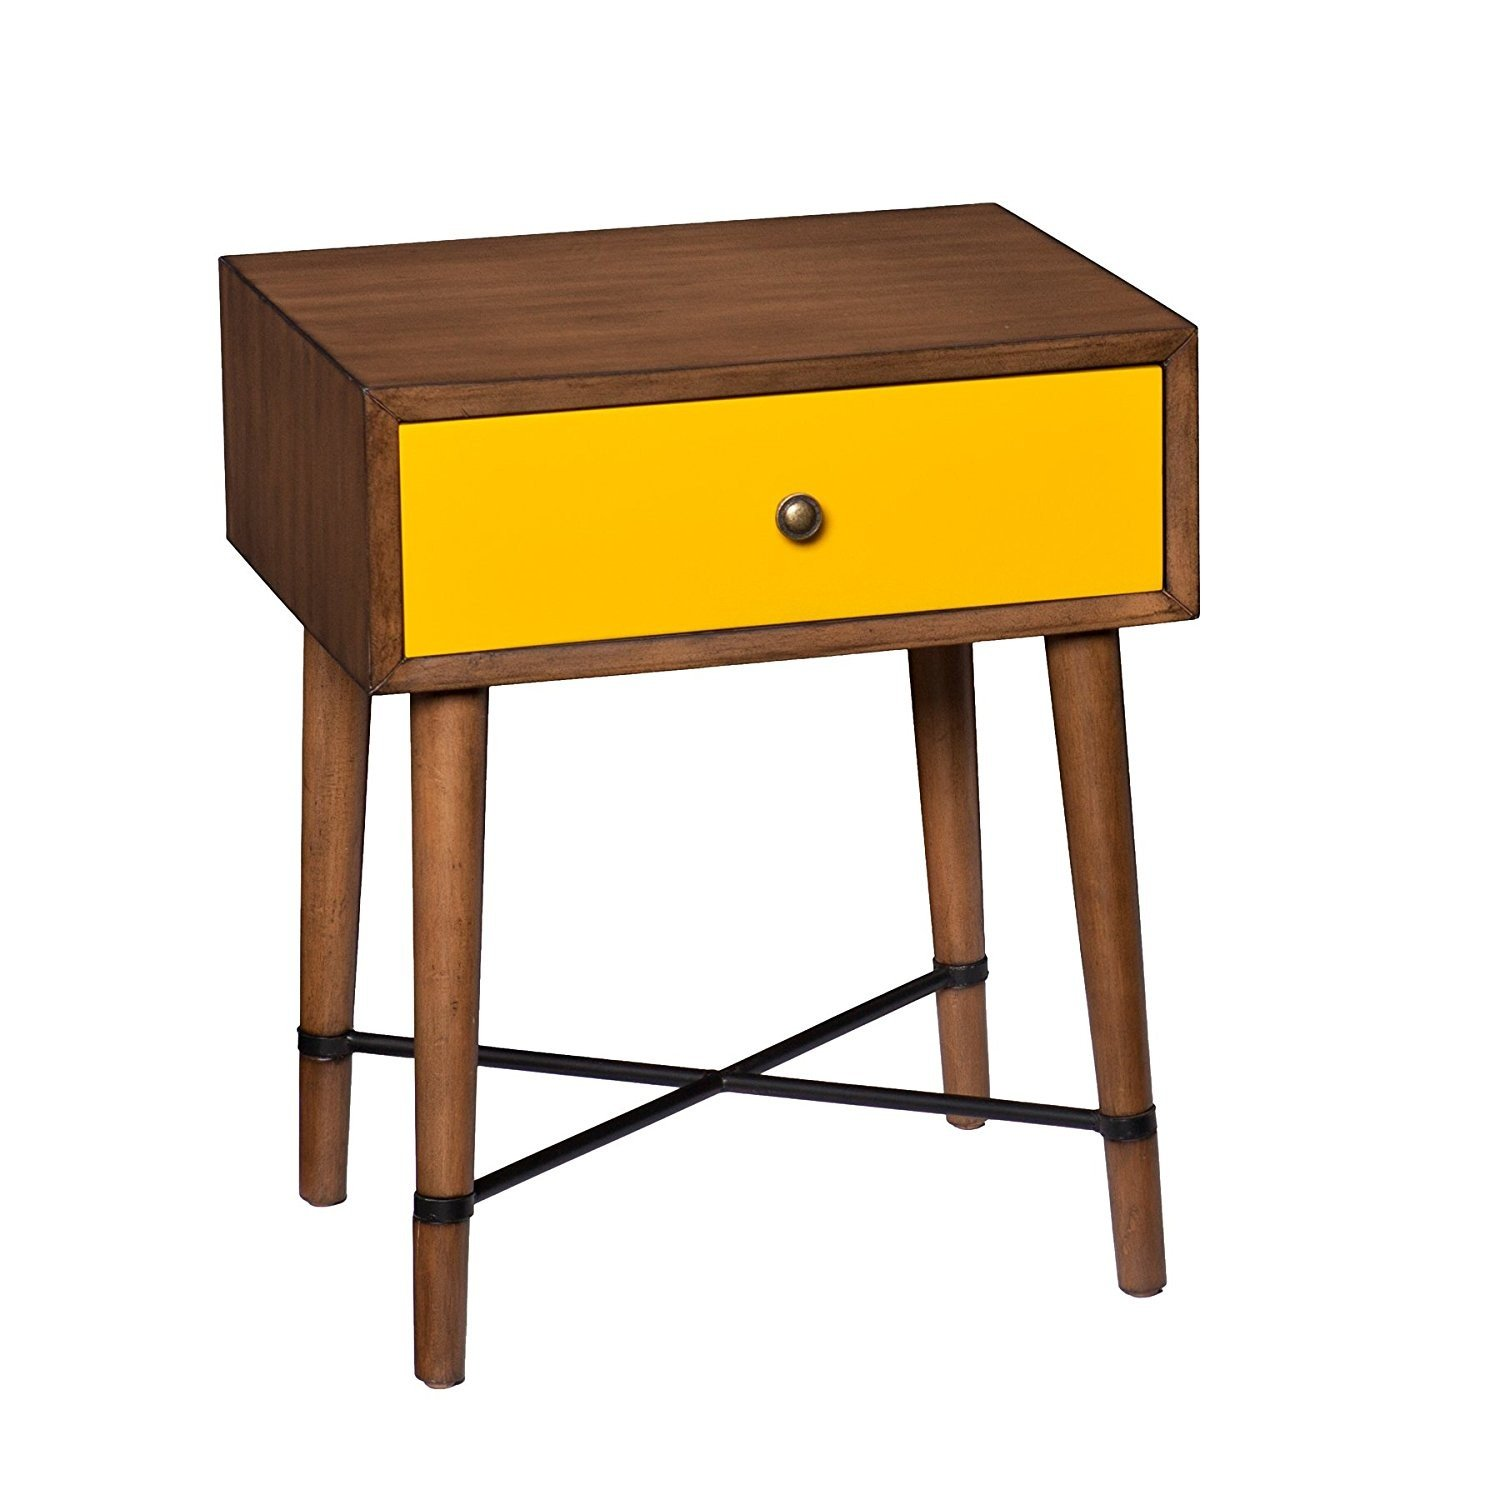 indoor multi function accent table study computer home yellow office desk bedroom living room modern style end sofa side coffee high dining washers blue accessories halloween